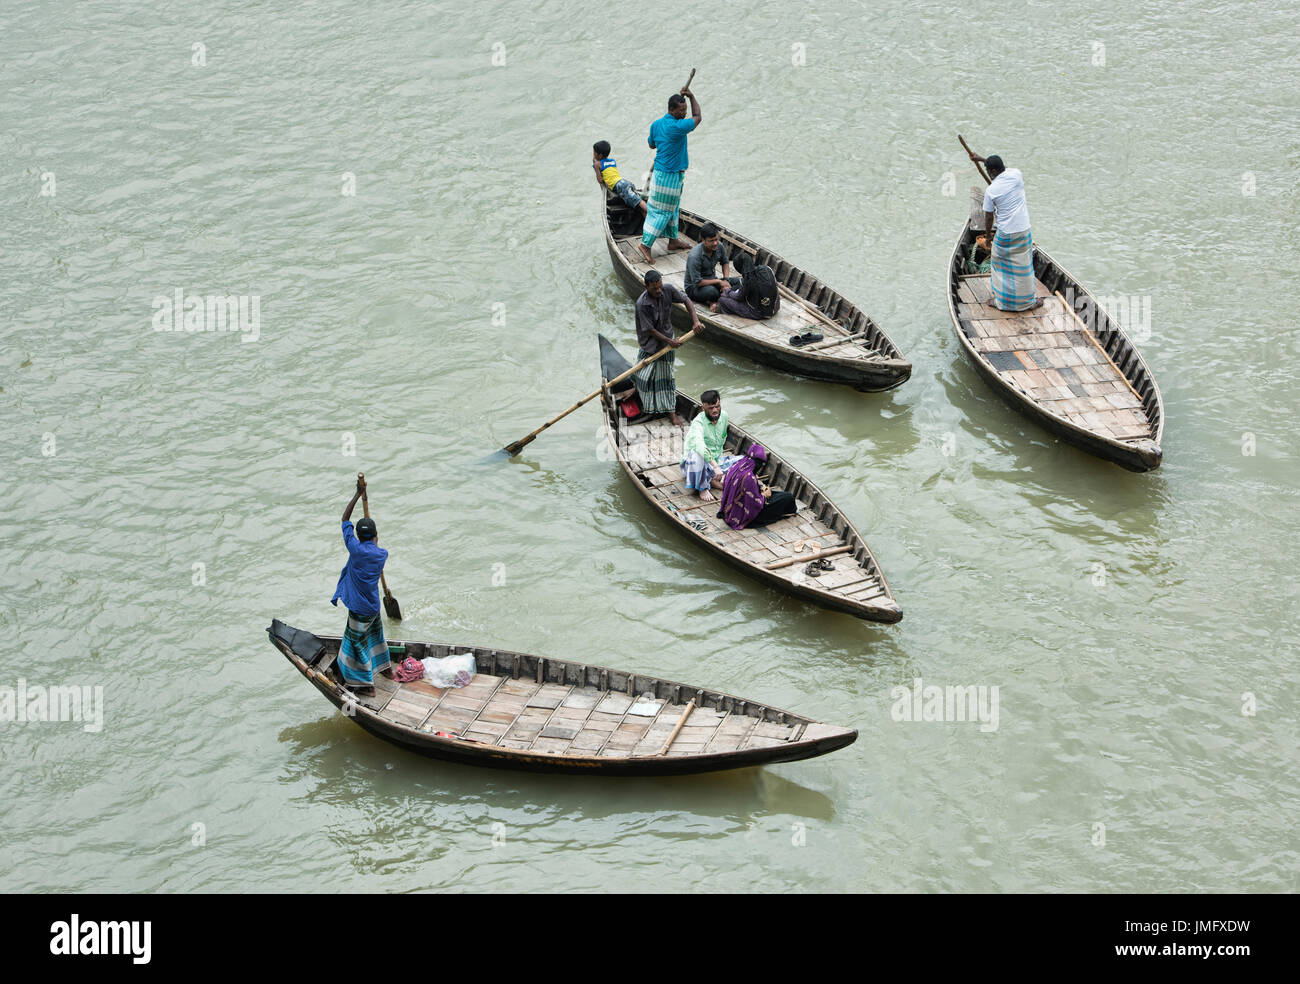 Rowboats on the Buriganga River, Dhaka, Bangladesh - Stock Image